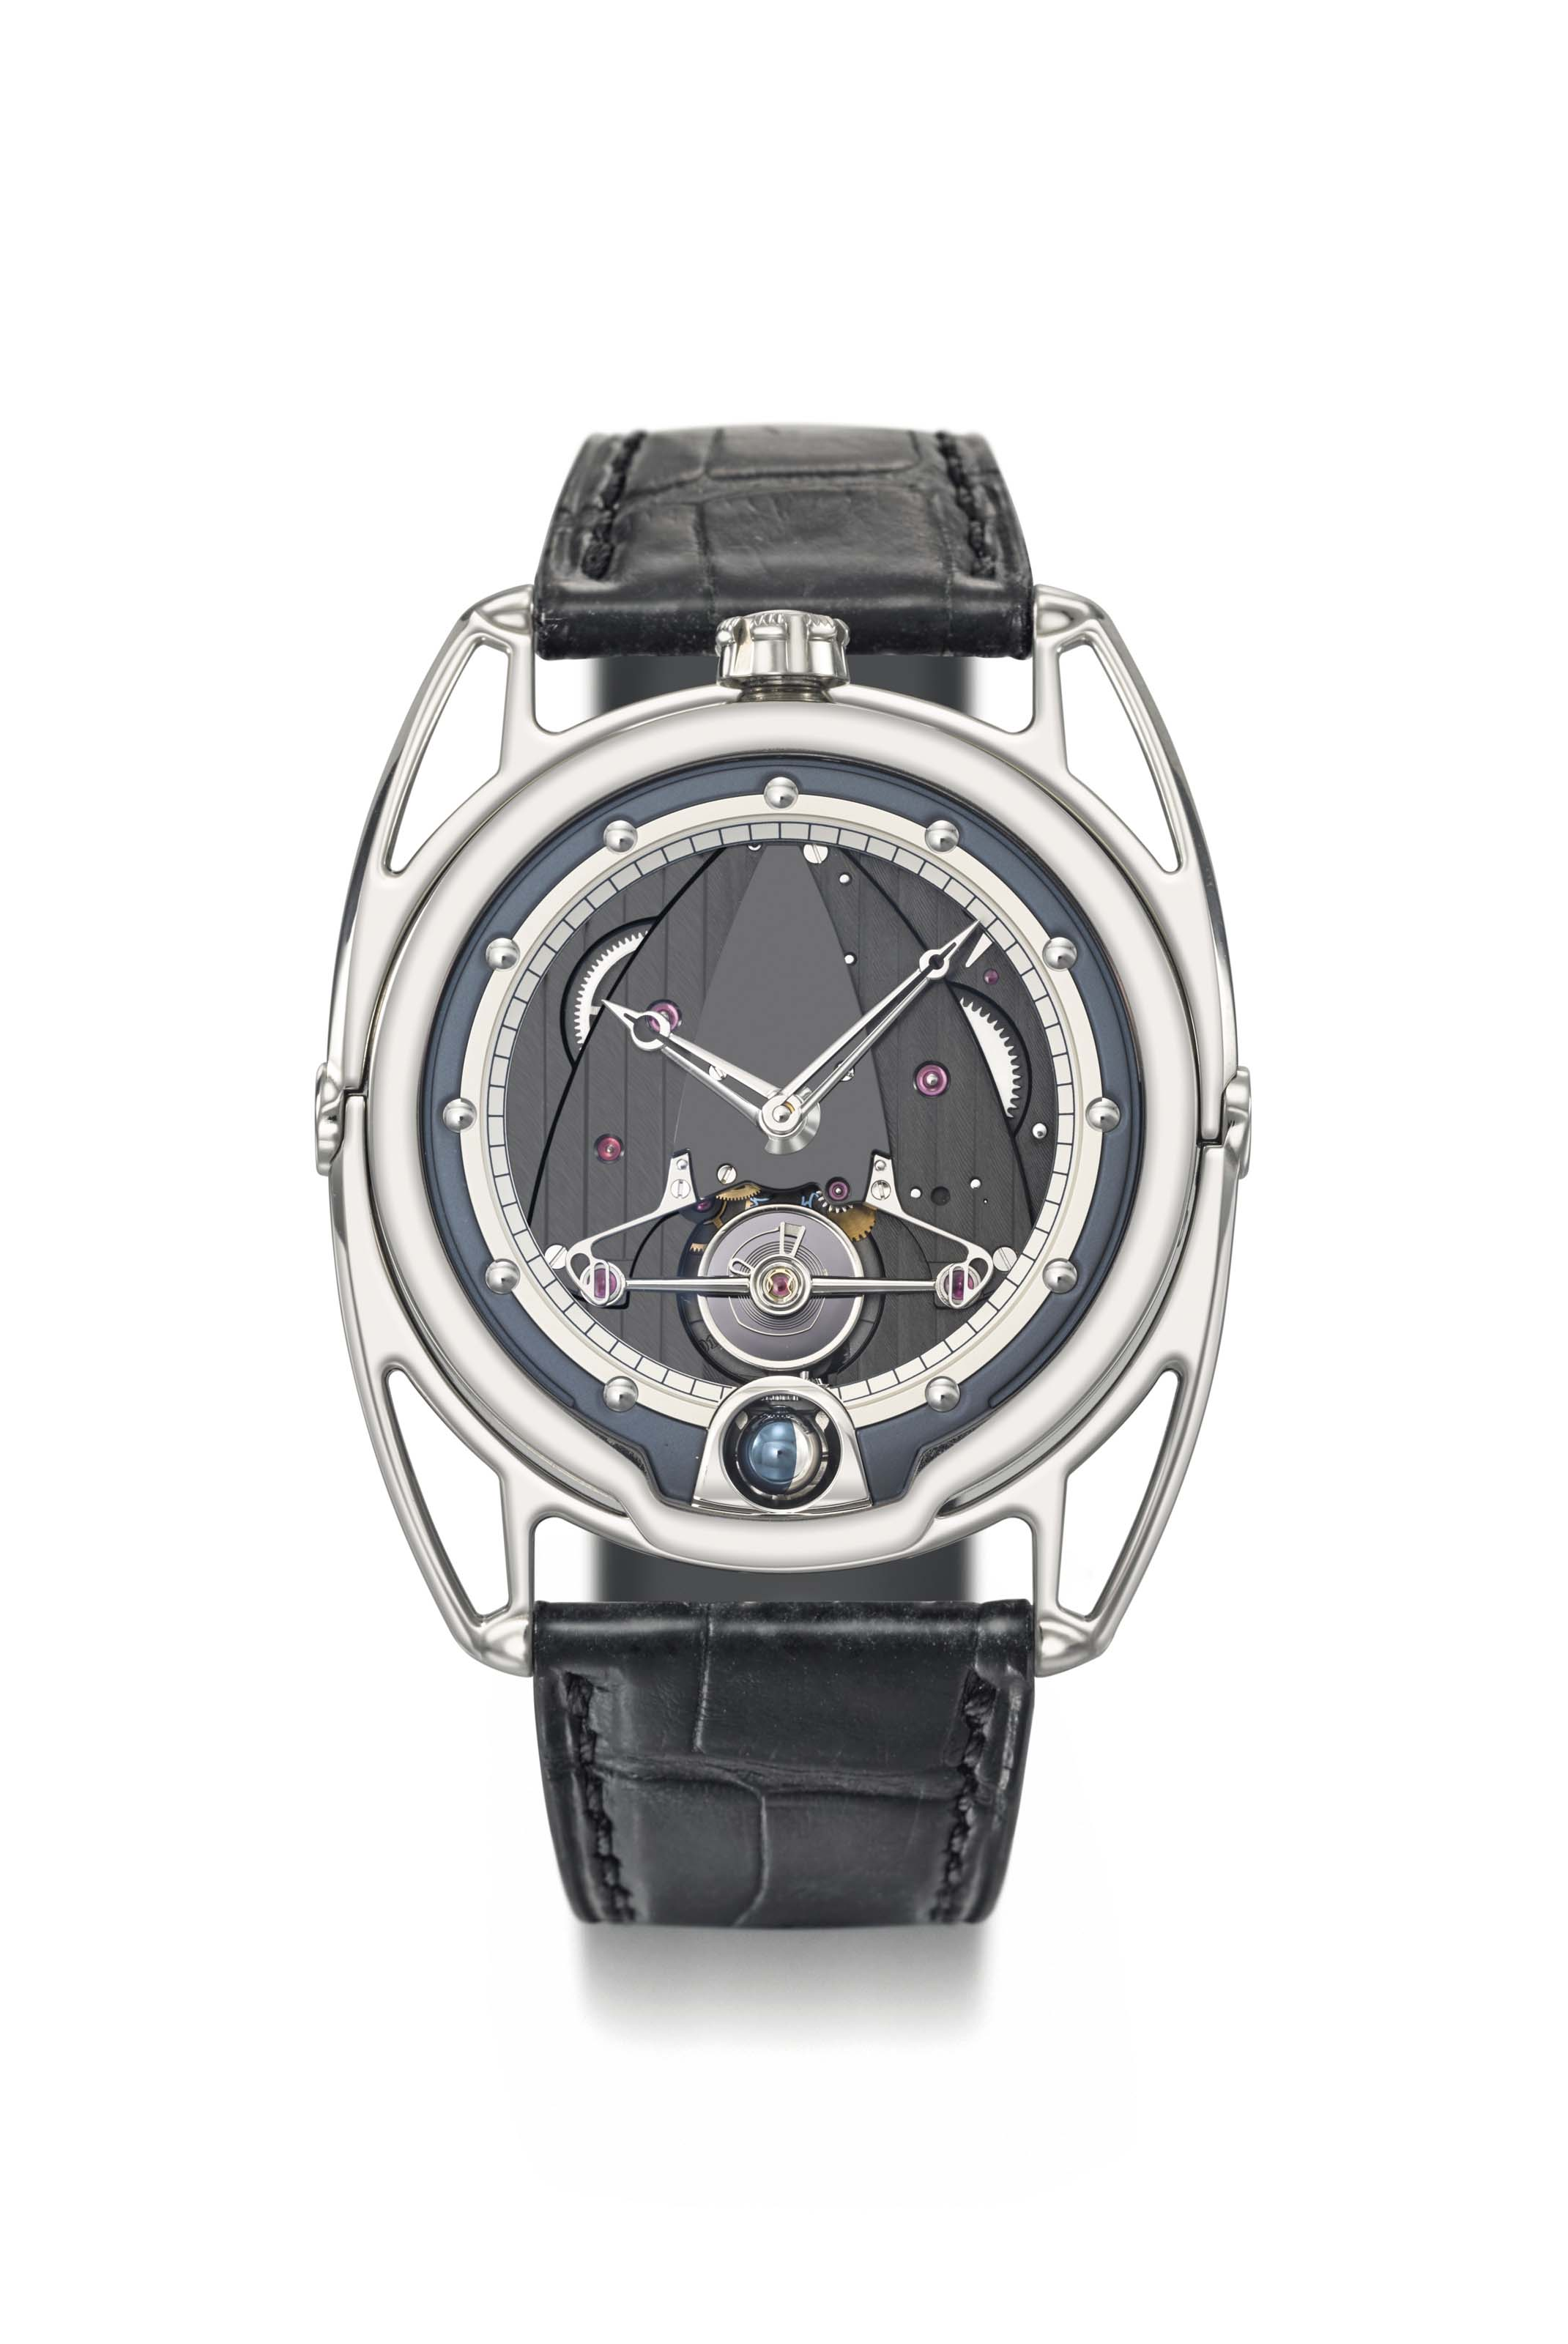 De Bethune. A fine, rare and innovative titanium semi-skeletonised wristwatch with spherical moon phase, power reserve and floating lugs